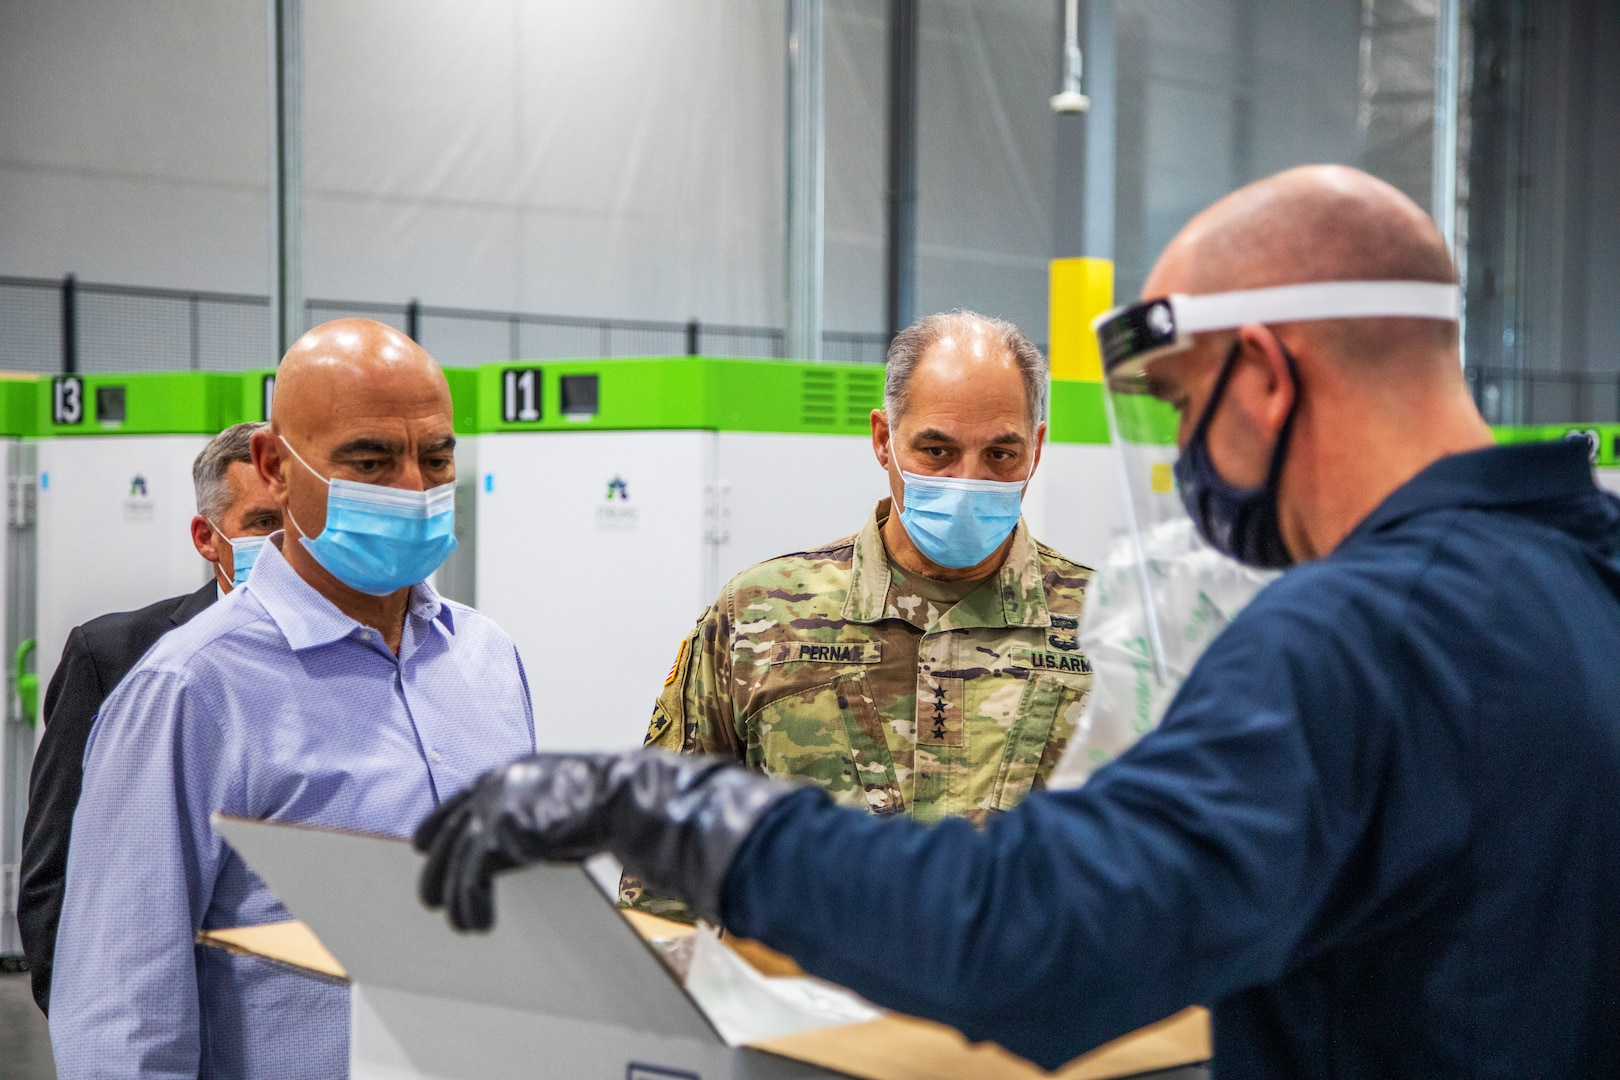 A man in a military uniform and two men wearing civilian clothes watch as another man opens a box. All of the men wear face masks.